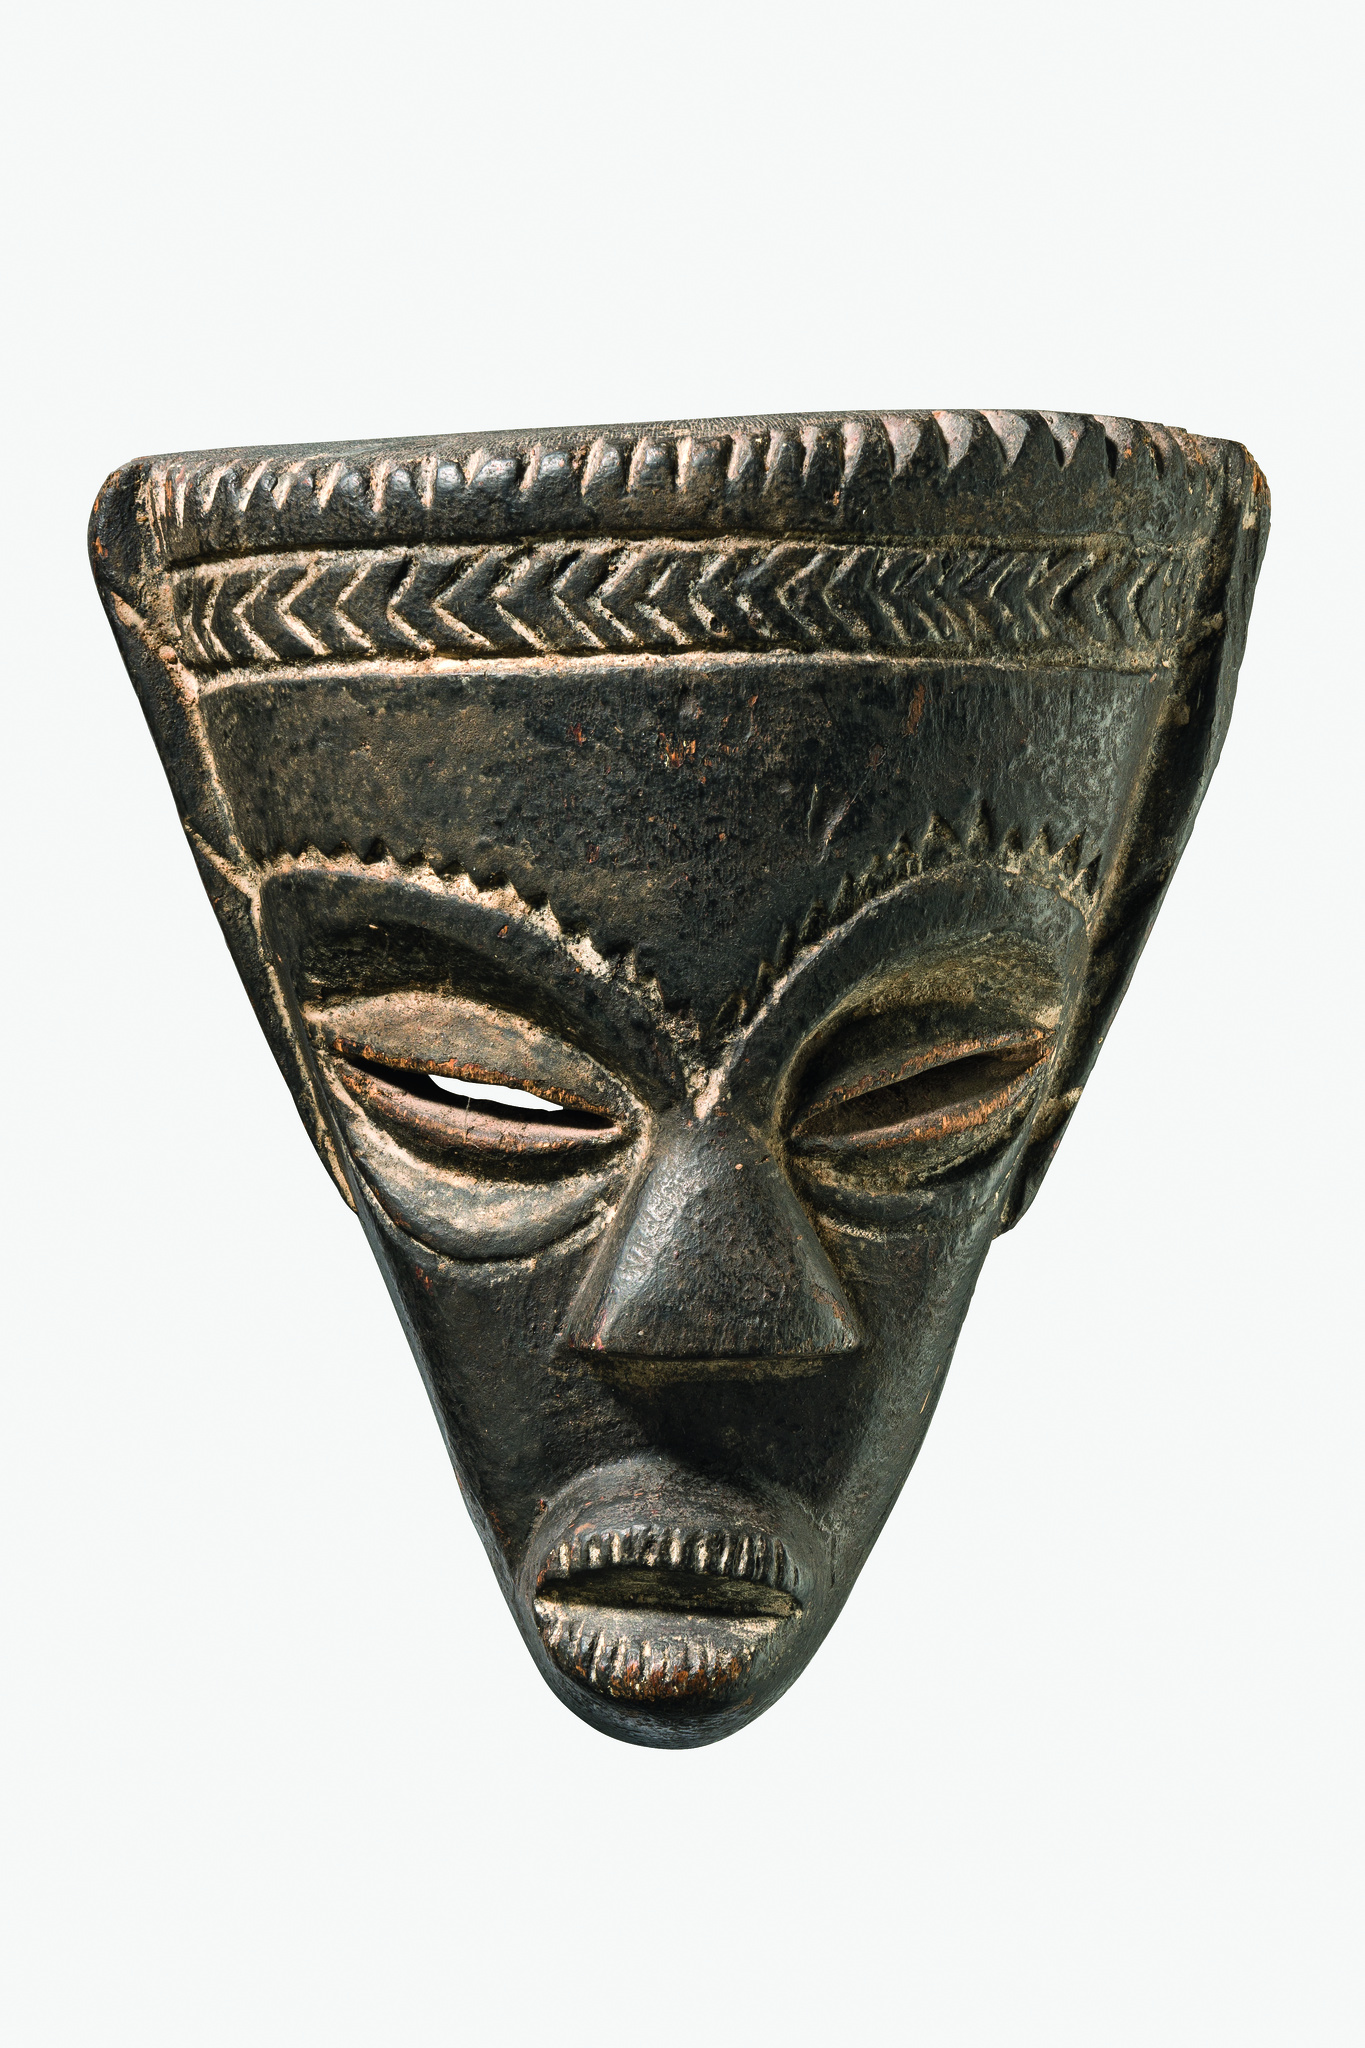 Small anthropomorphic mask